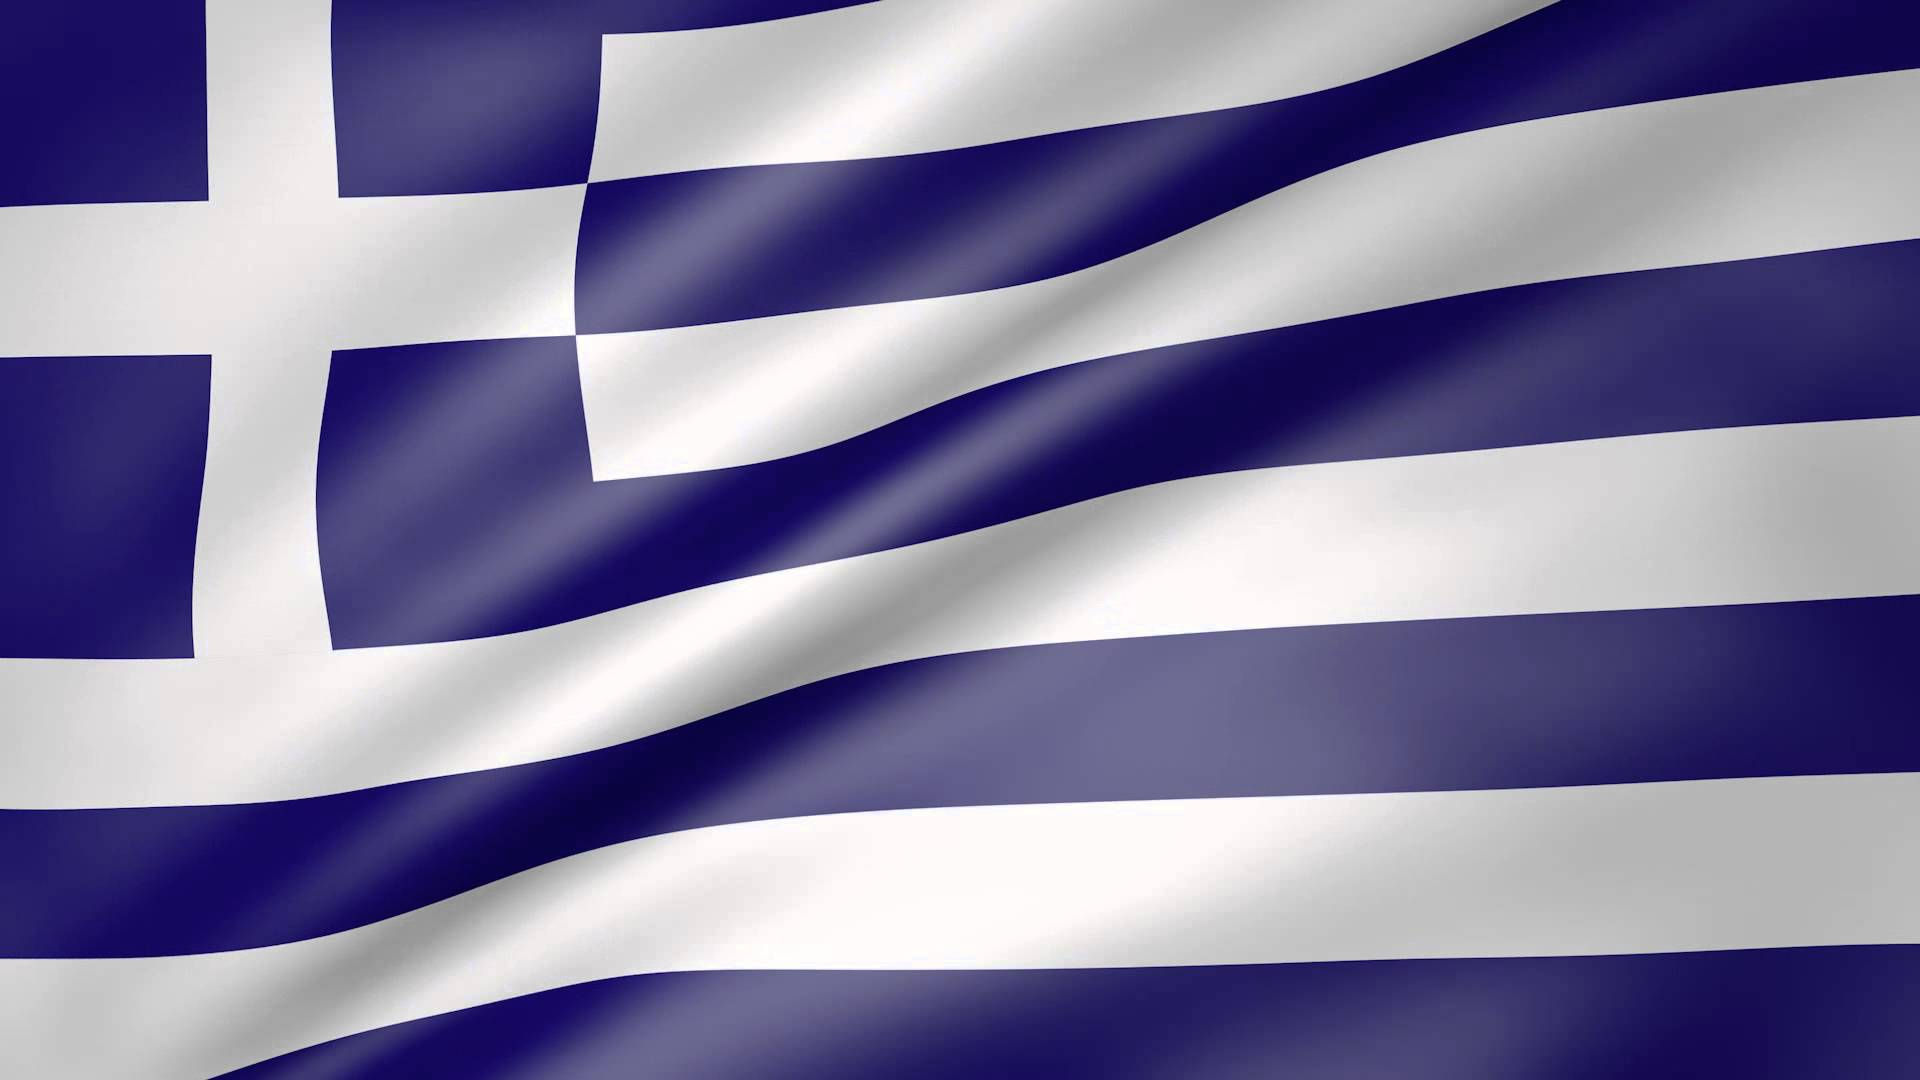 Images of Flag Of Greece | 1920x1080